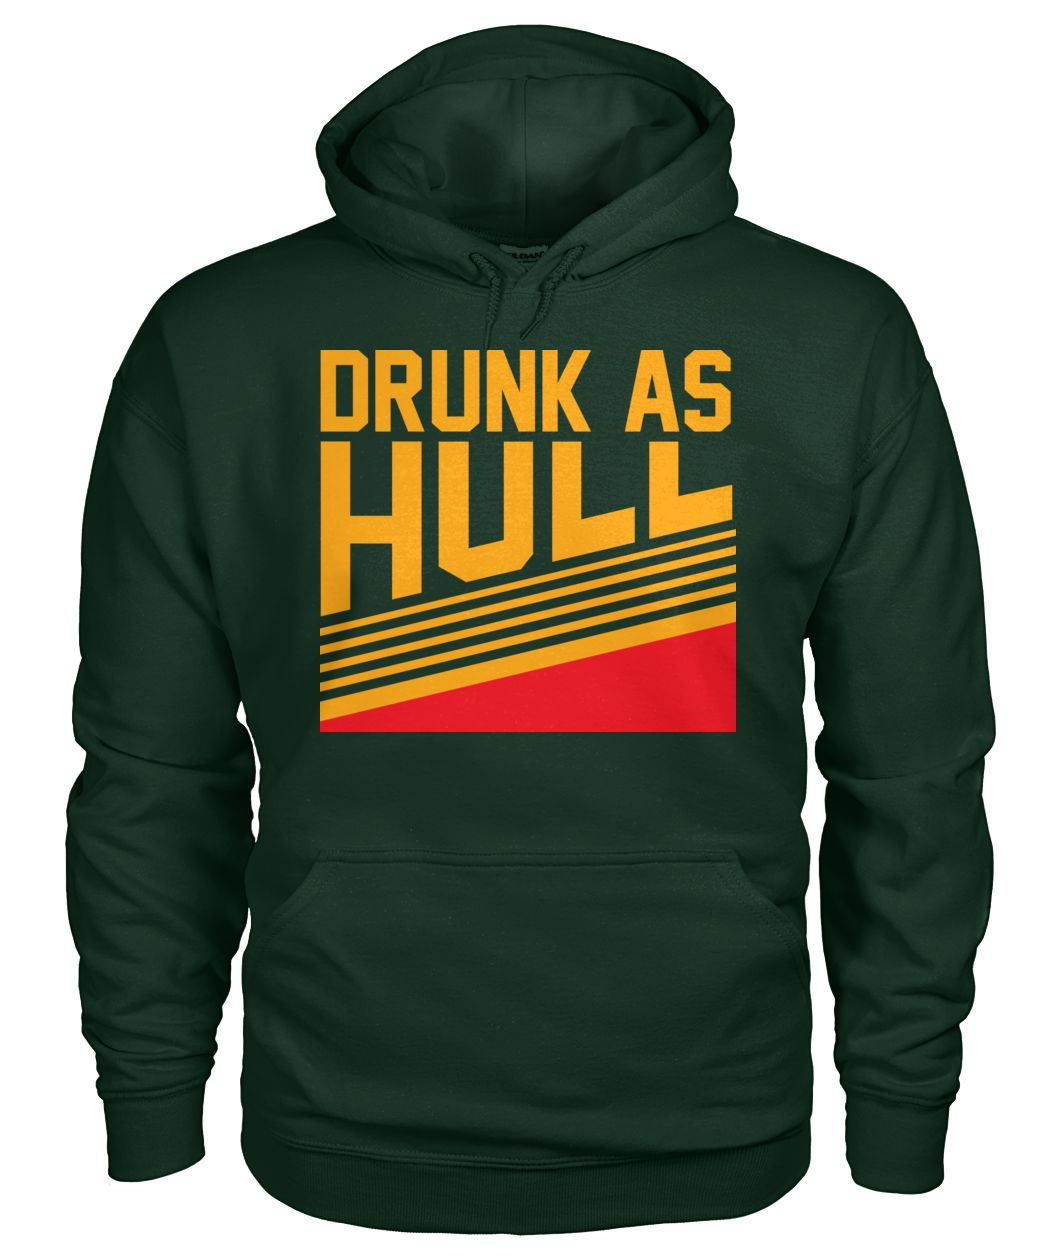 Drunk as hull St louis hockey gildan hoodie